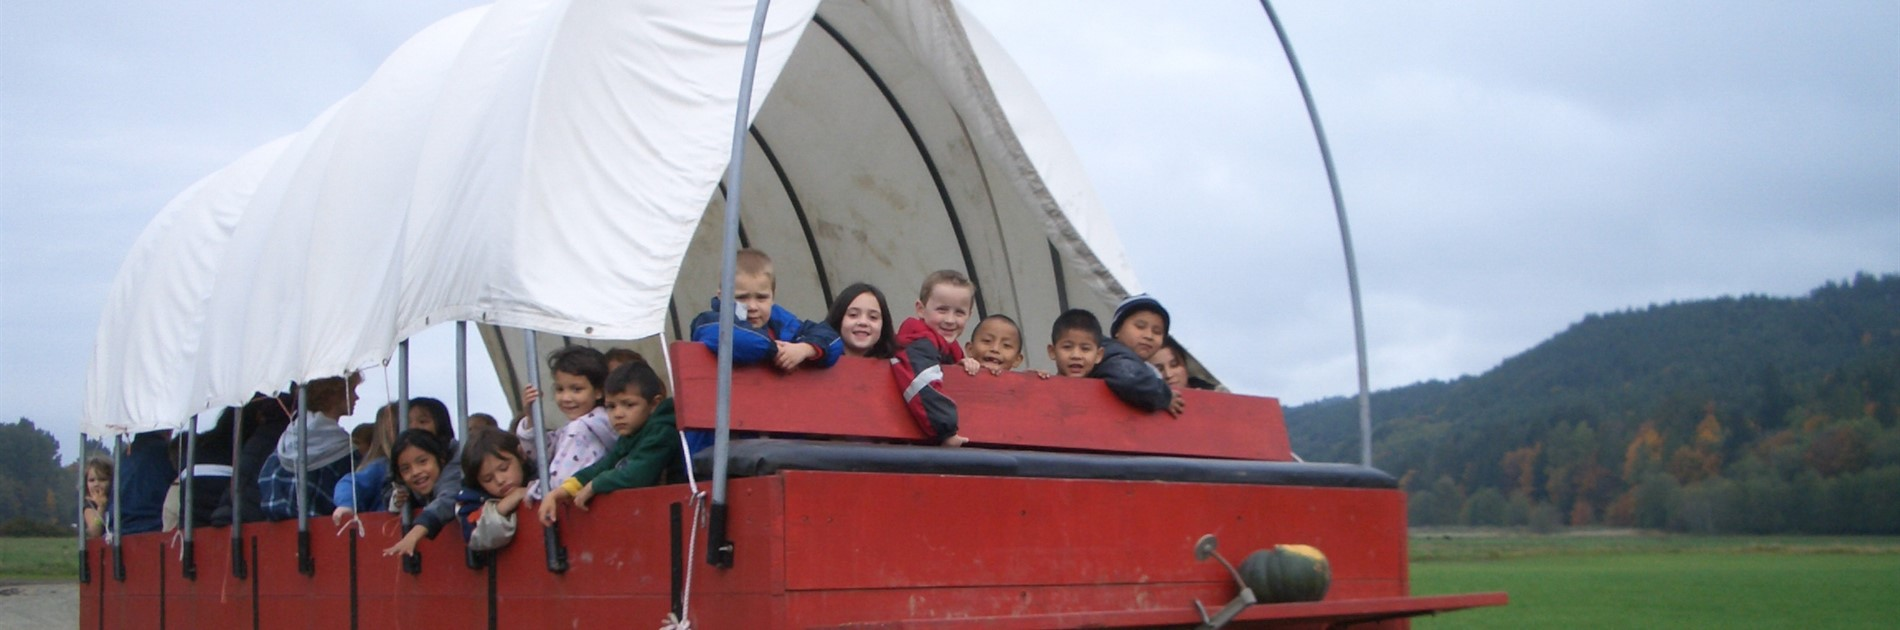 Students in covered wagon in October